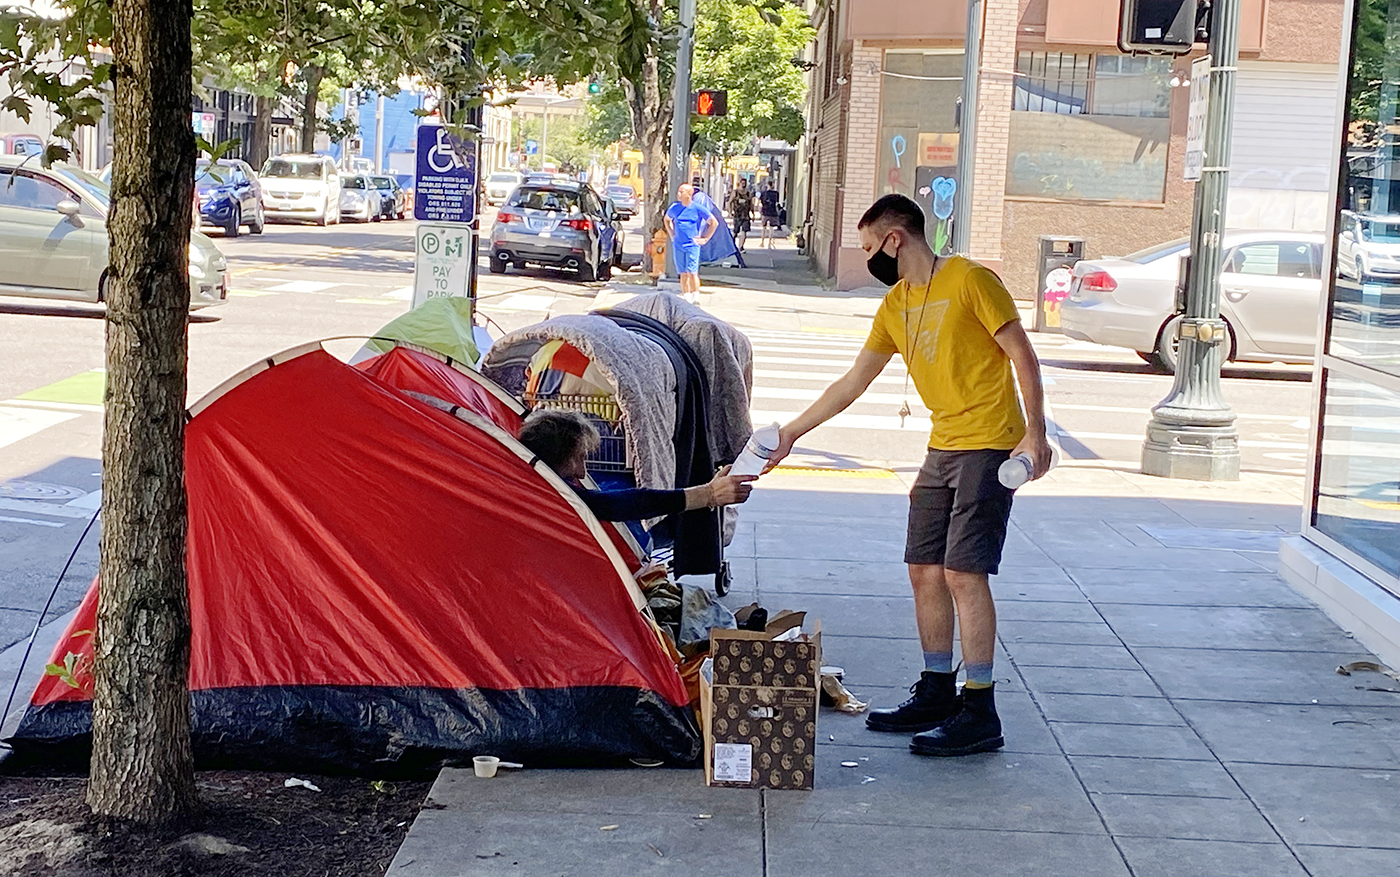 A volunteer from Blanchet House offers a bottle of water to a person sleeping in a tent during the Portland, Oregon heat wave of 2021.